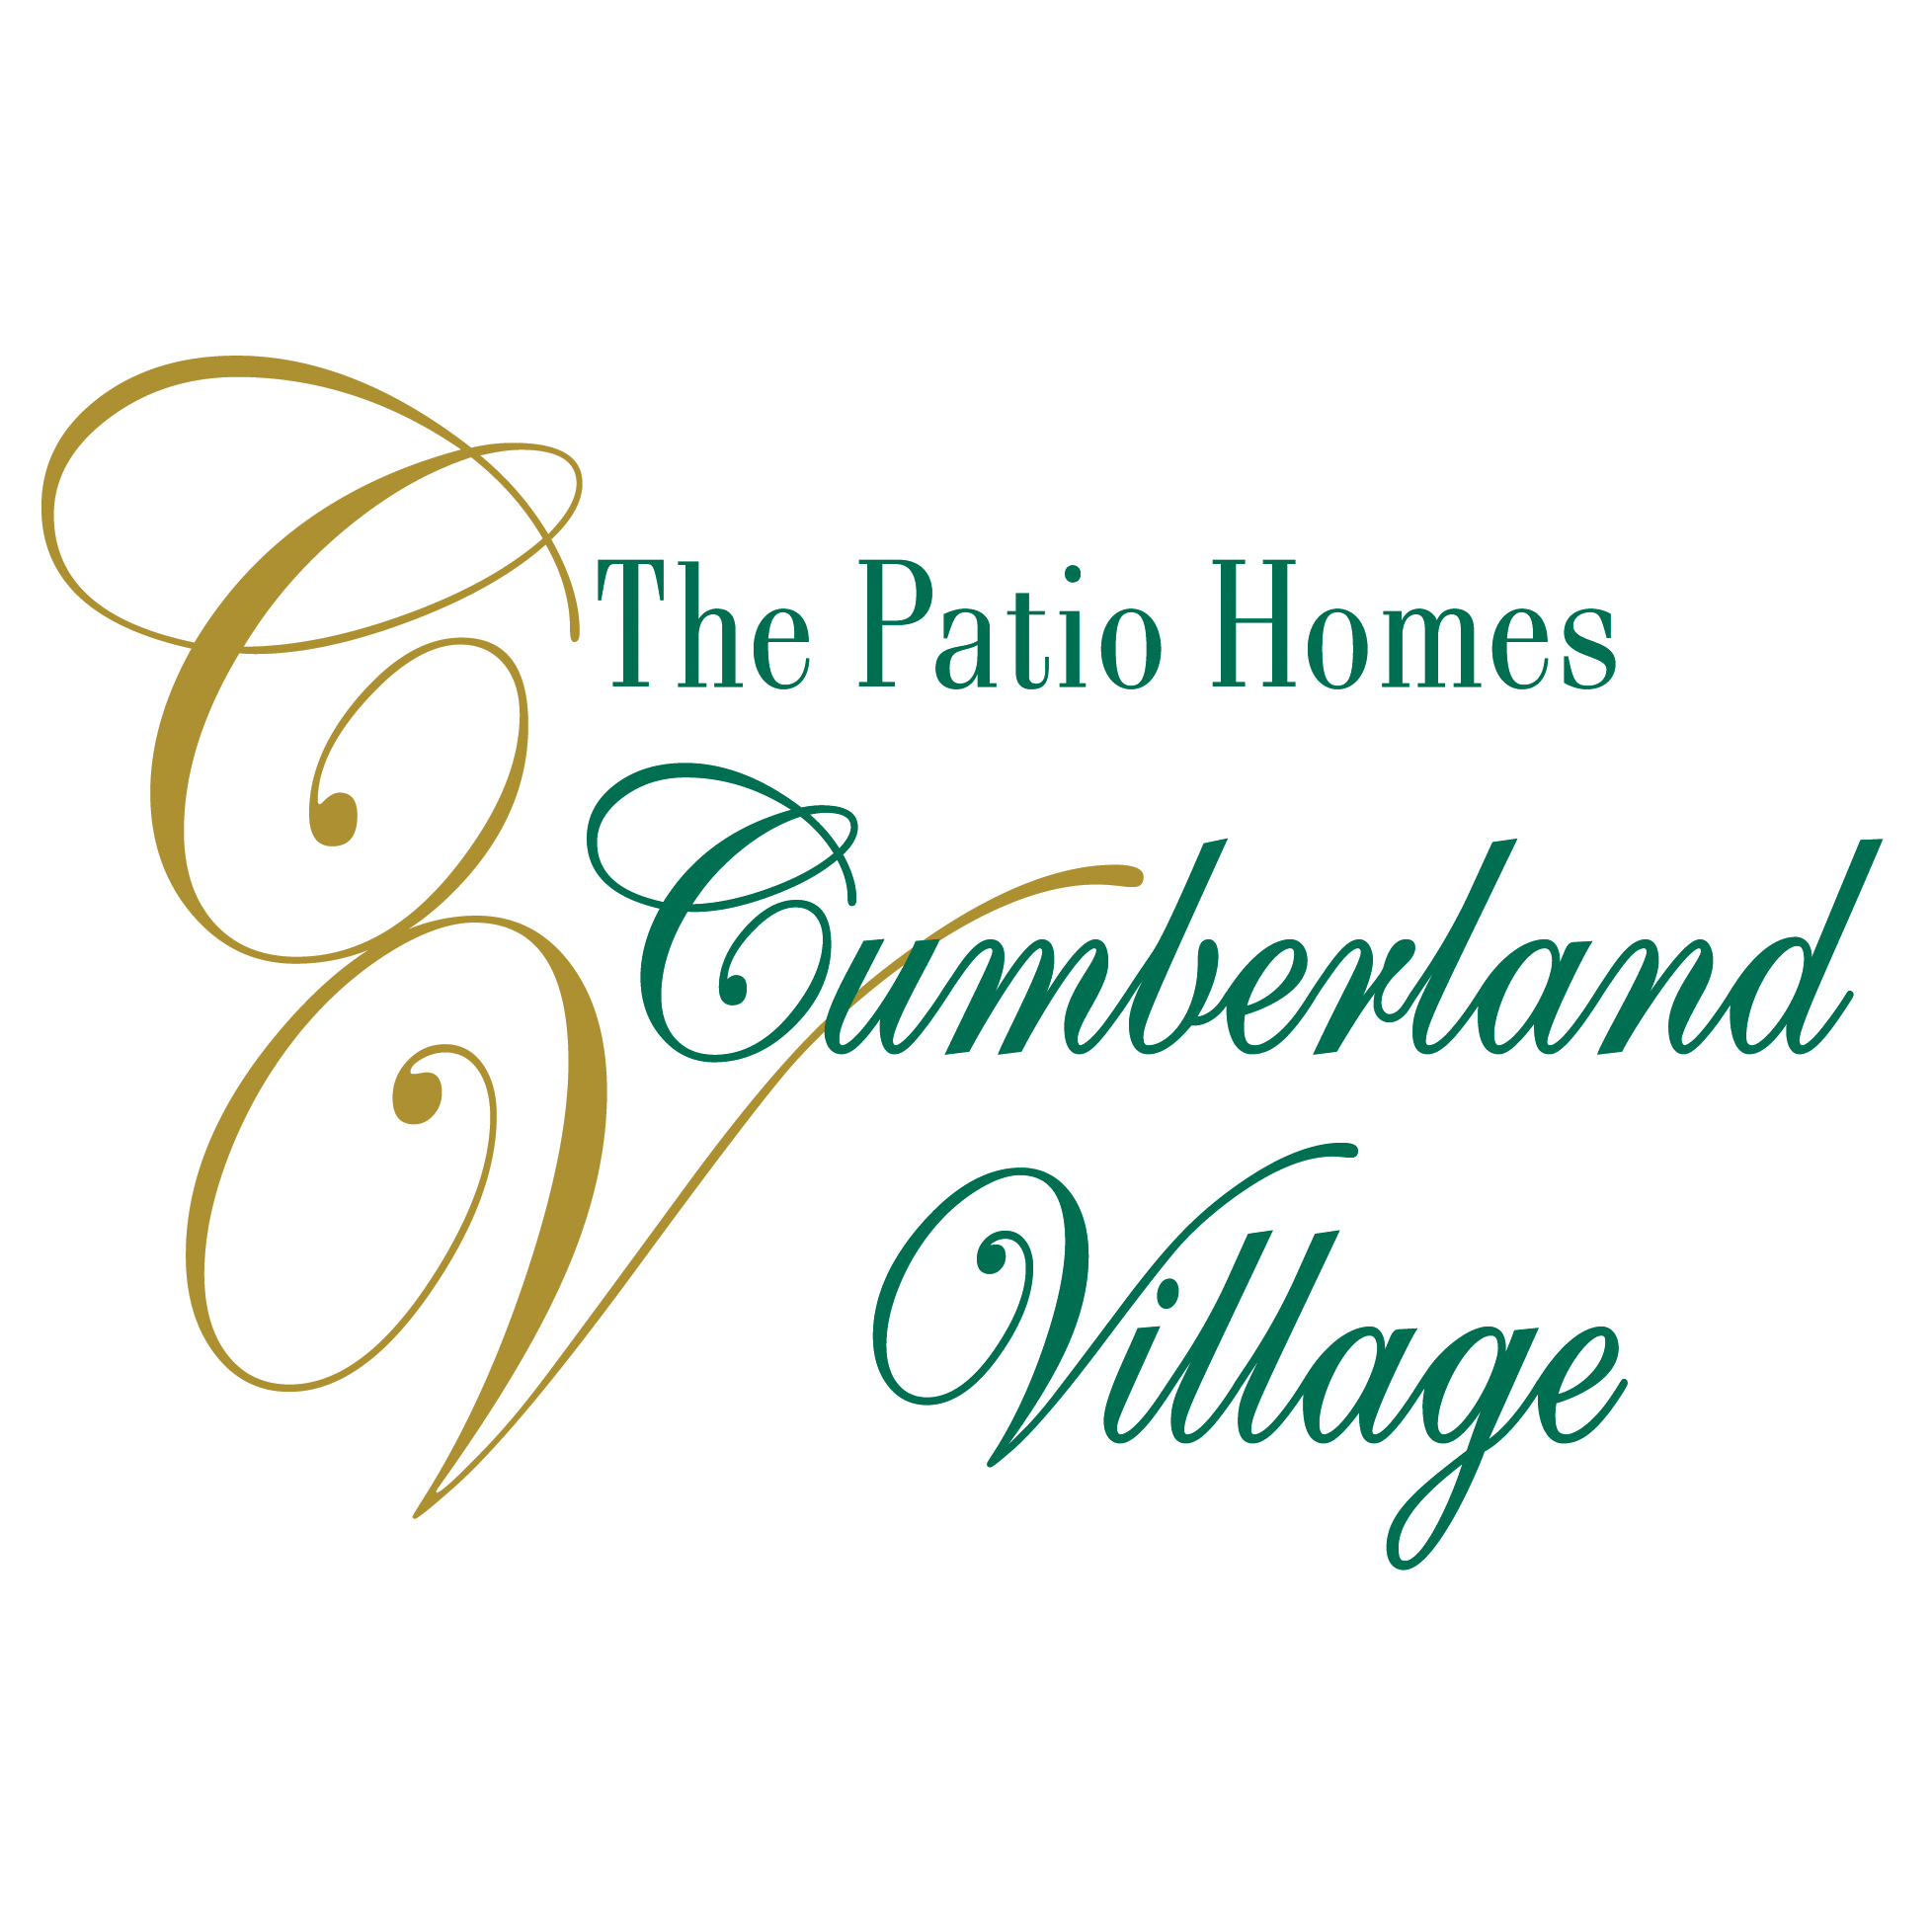 The Patio Homes of Cumberland Village - A Marrinson Senior Care Residence image 21